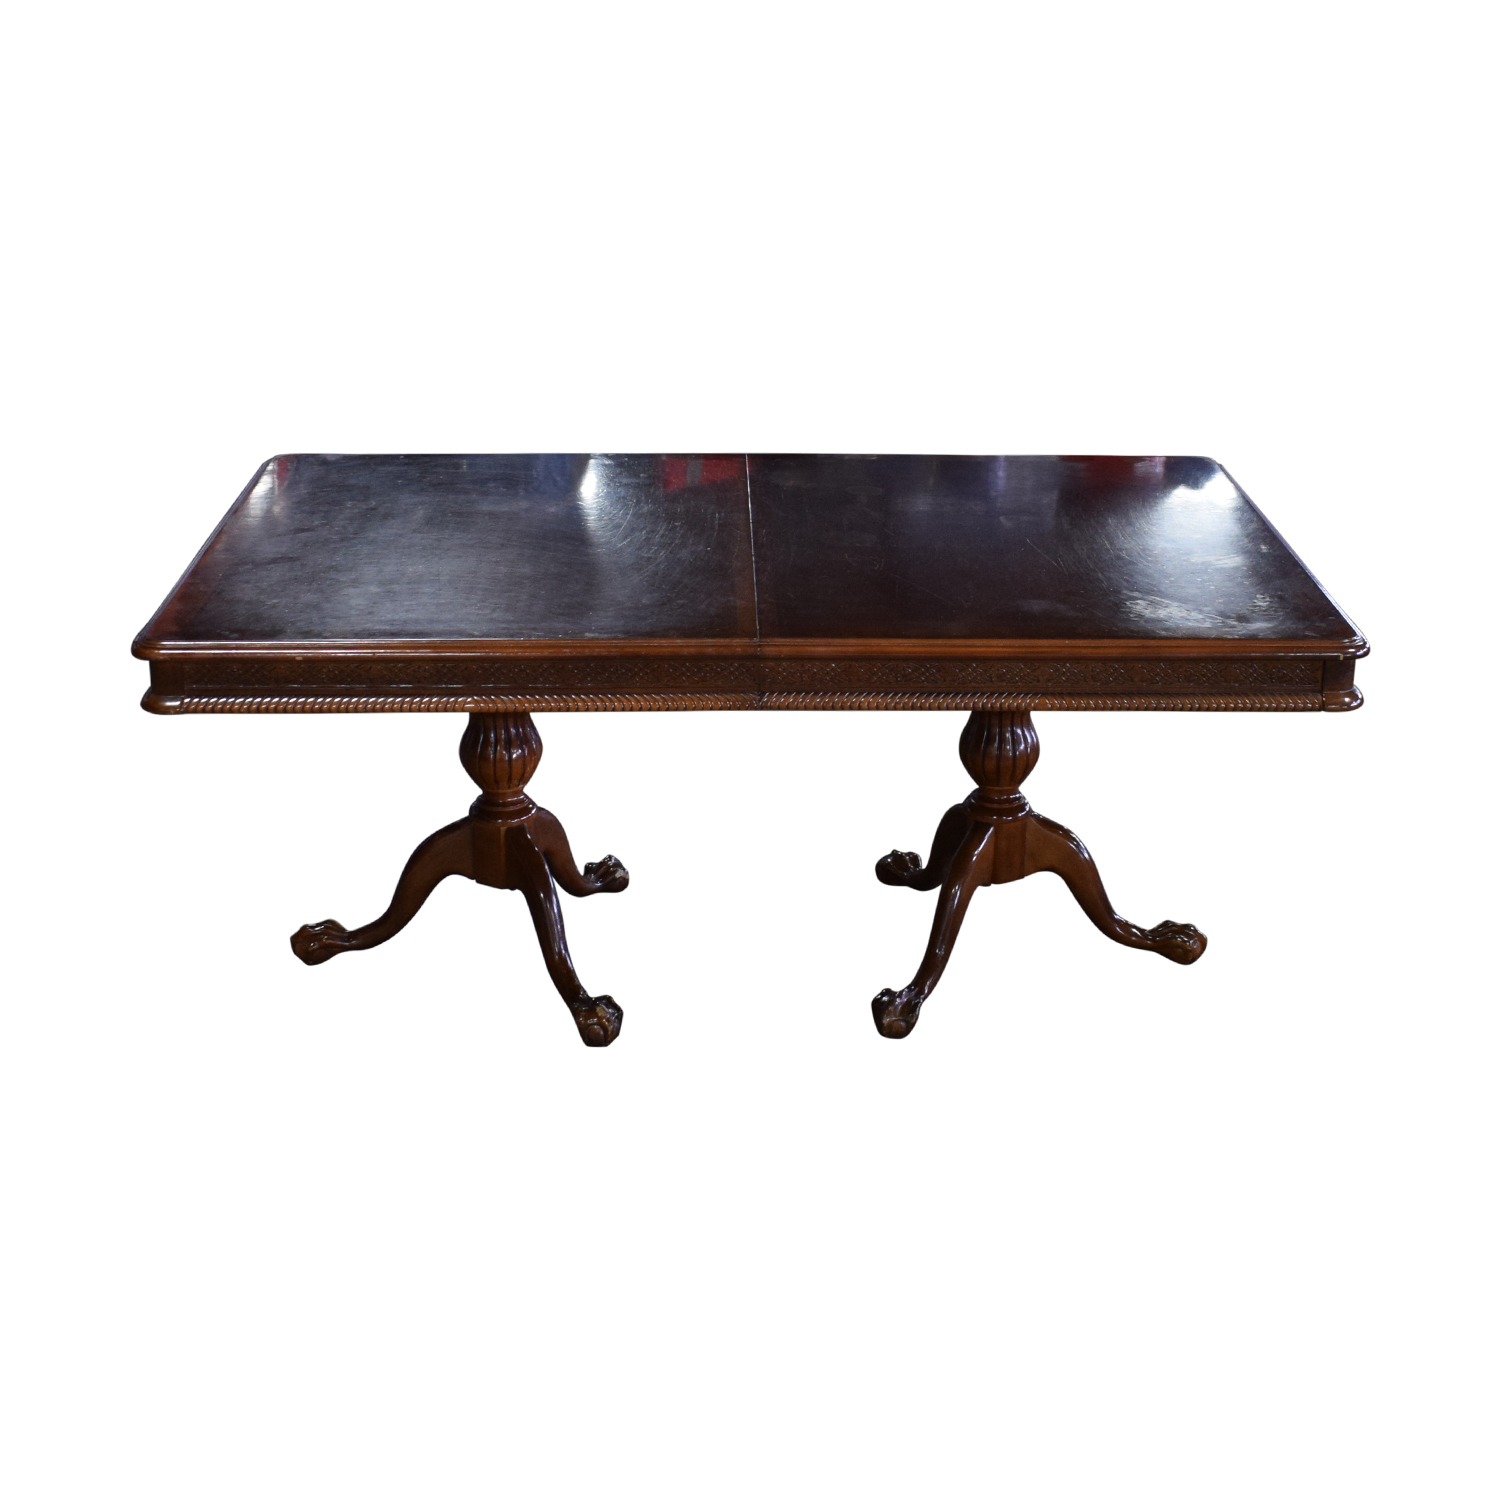 Carved Wood Dining Table with Two Extensions